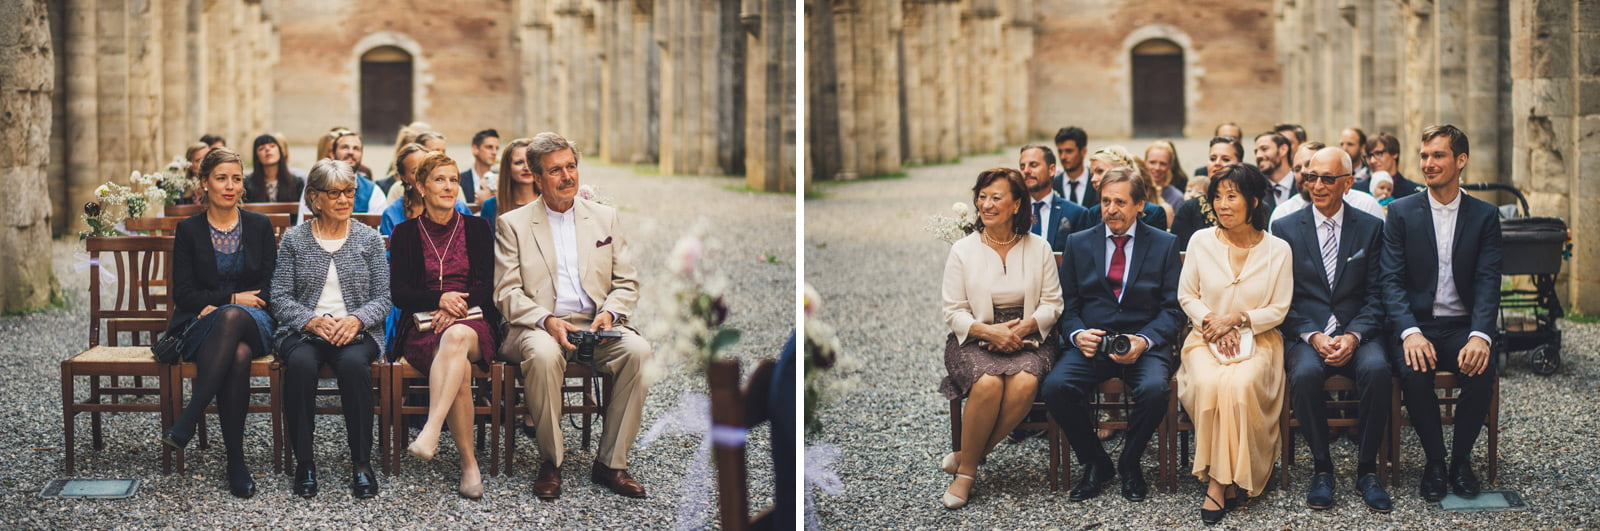 035-wedding-tuscany-san-galgano-siena-photographer